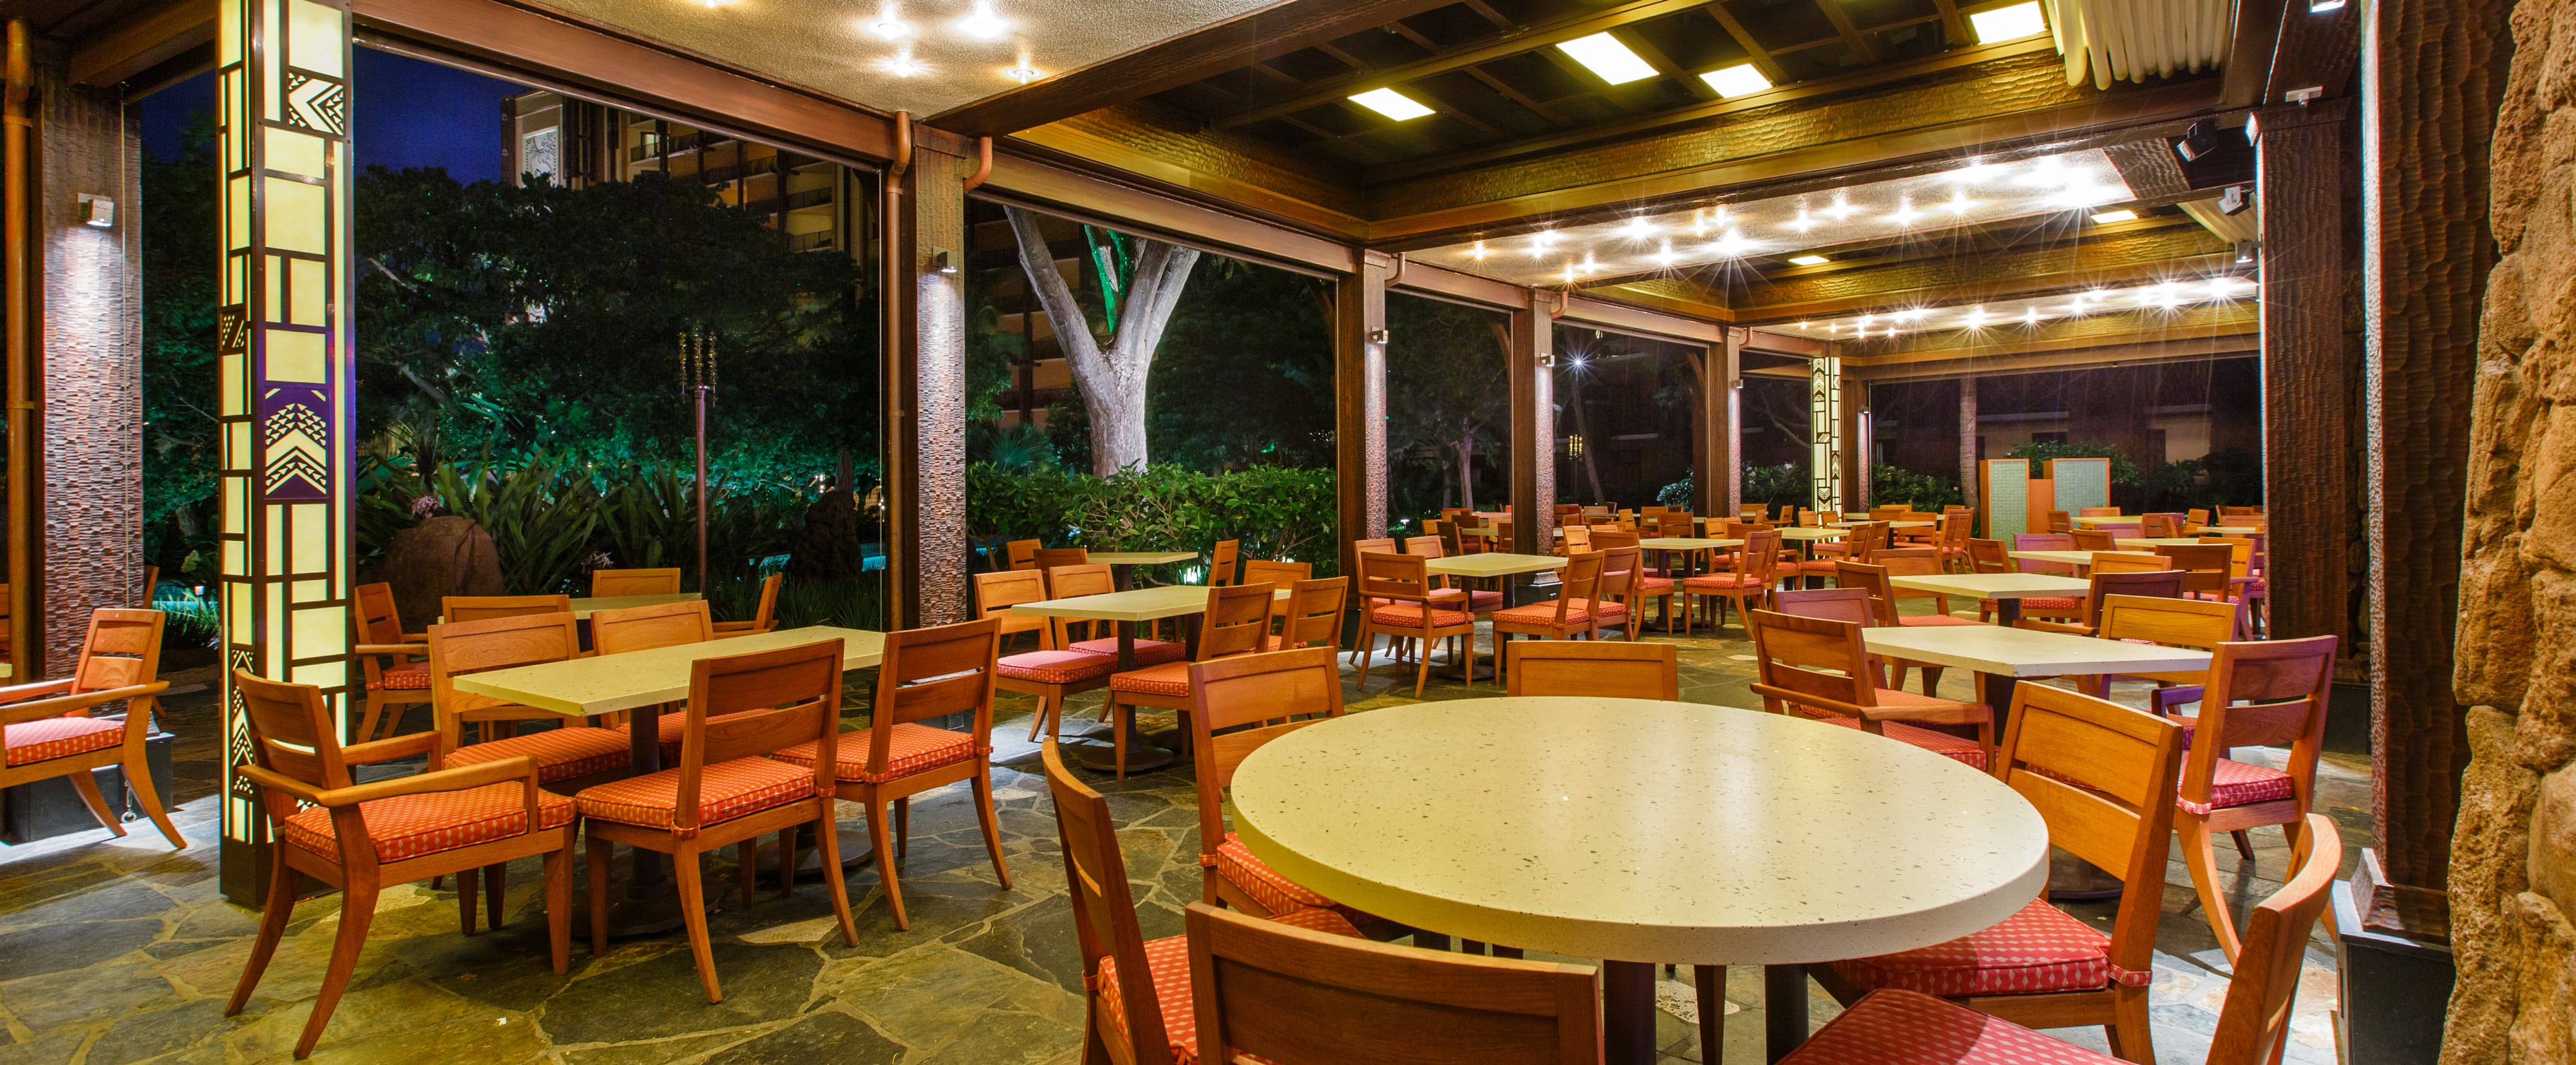 Tables on a large covered patio, lit up at night